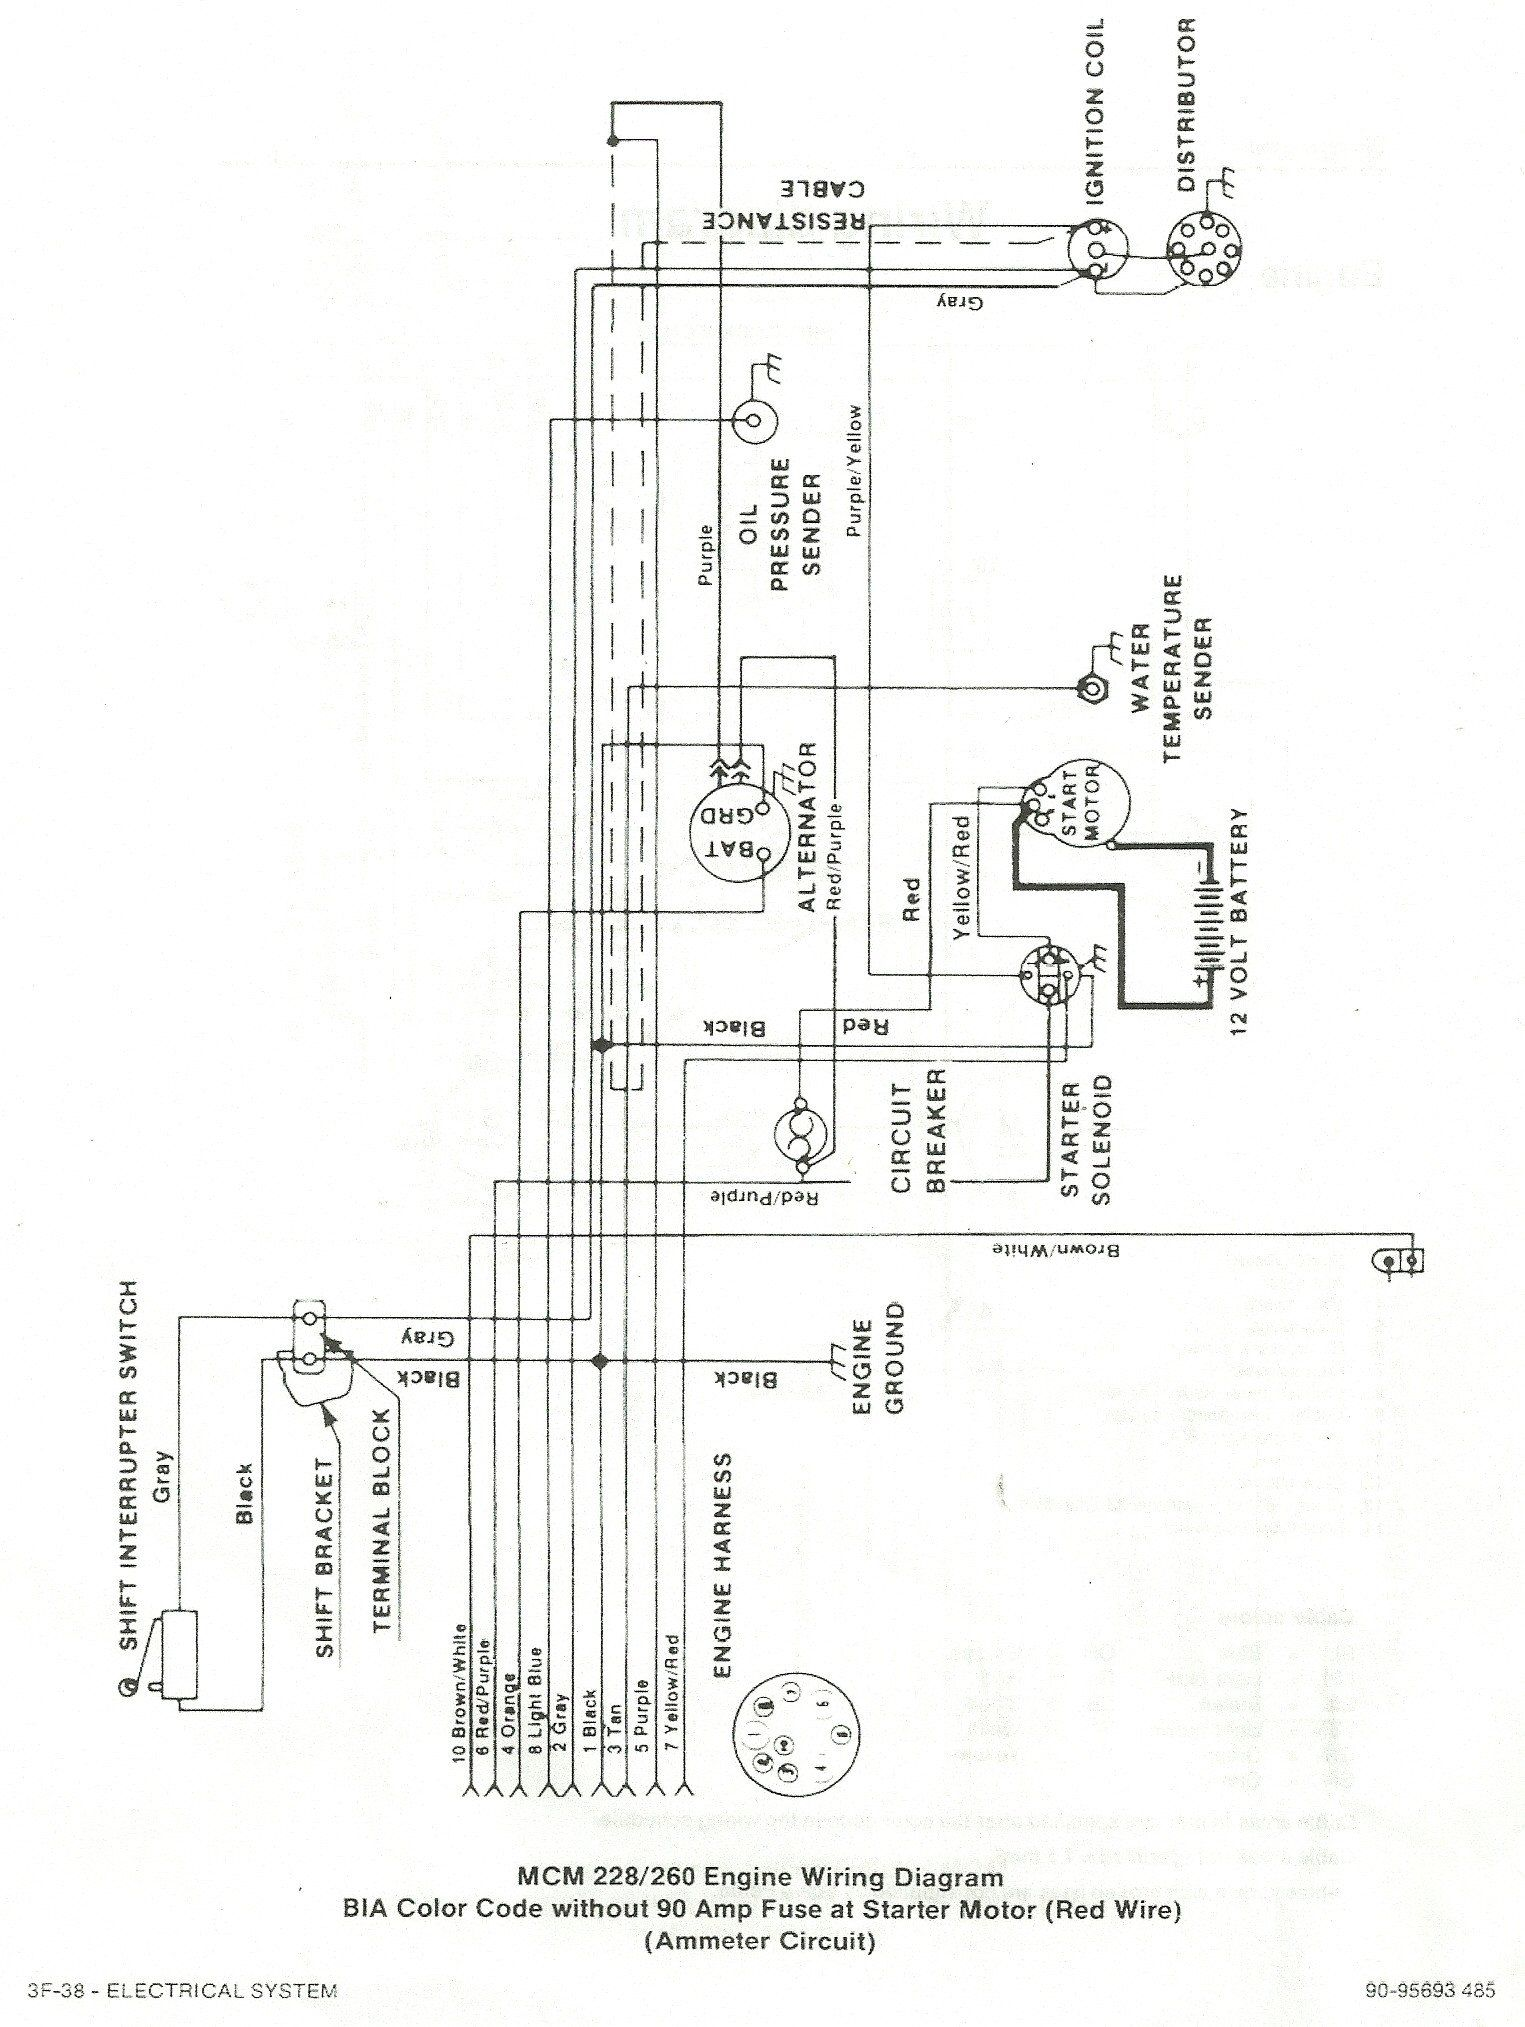 mercruiser electrical diagram wiring diagram write Mercruiser Trim Sensor Wiring Diagram